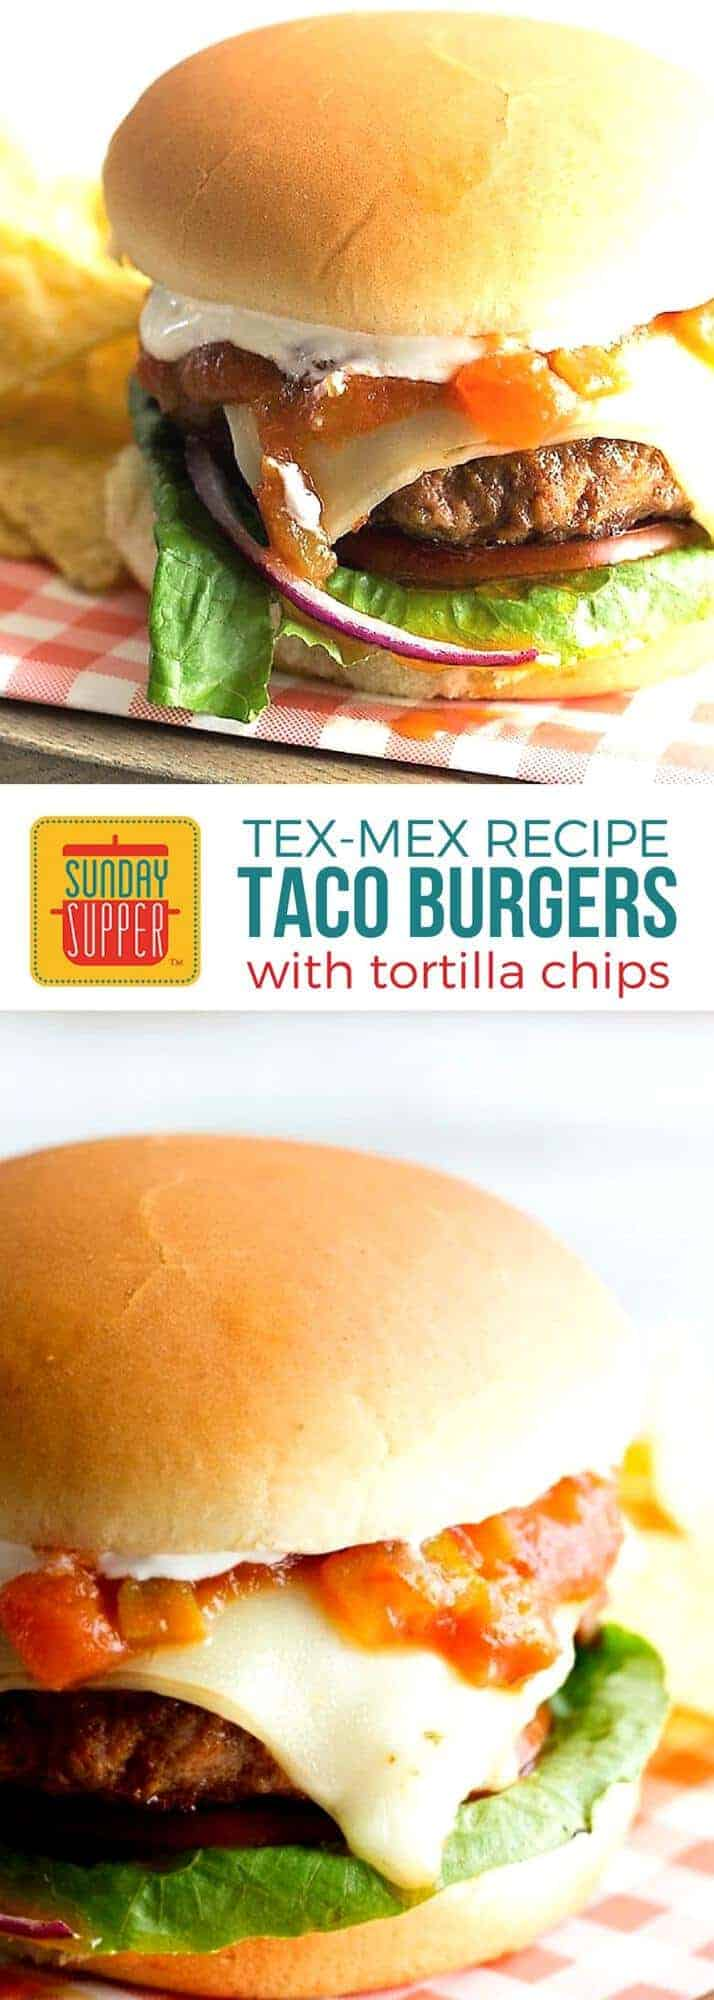 Taco Burgers blend two favorite tastes, the beef burger and the spicy taco into one delicious dinner your family will rave about! Serve with tortilla chips, or stack them on top of the patty for a recipe you'll want to make again and again! Our Taco Burgers make a tasty treat anytime, but we especially love them in the summer for holidays such as Labor Day and the 4th of July! #SundaySupper